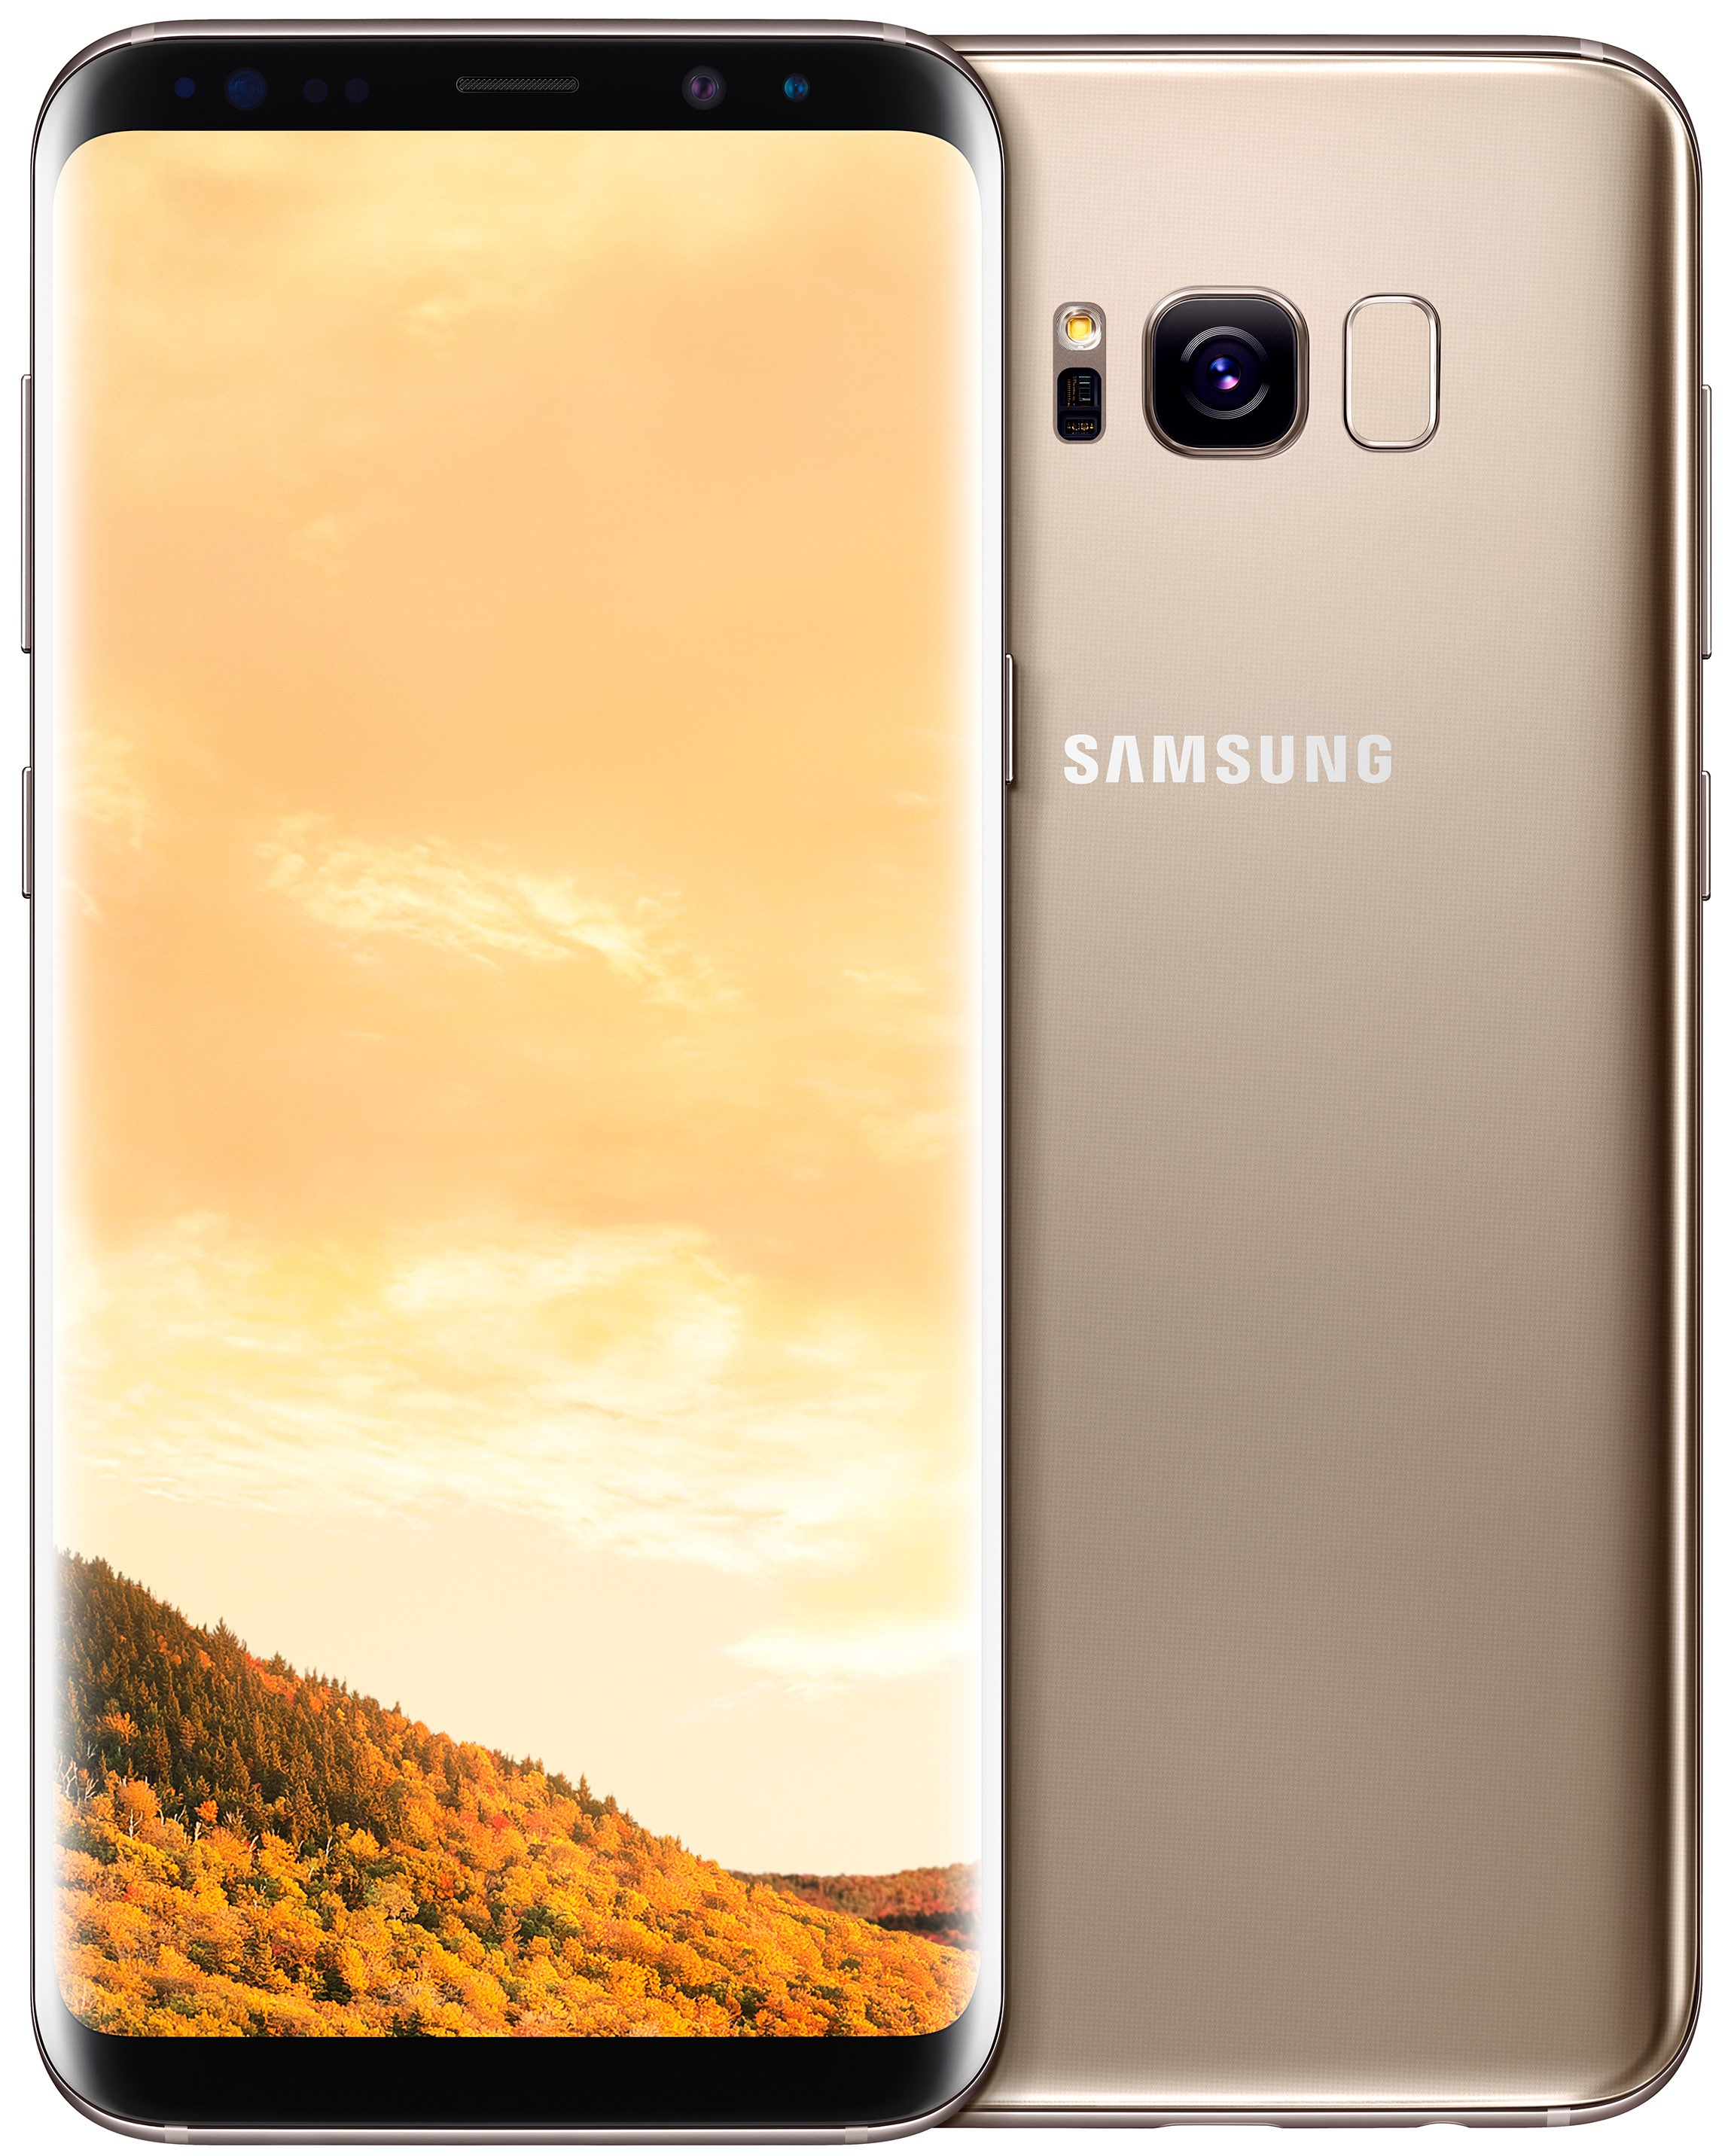 Despite rear fingerprint sensor, Consumer Reports ranks Galaxy S8